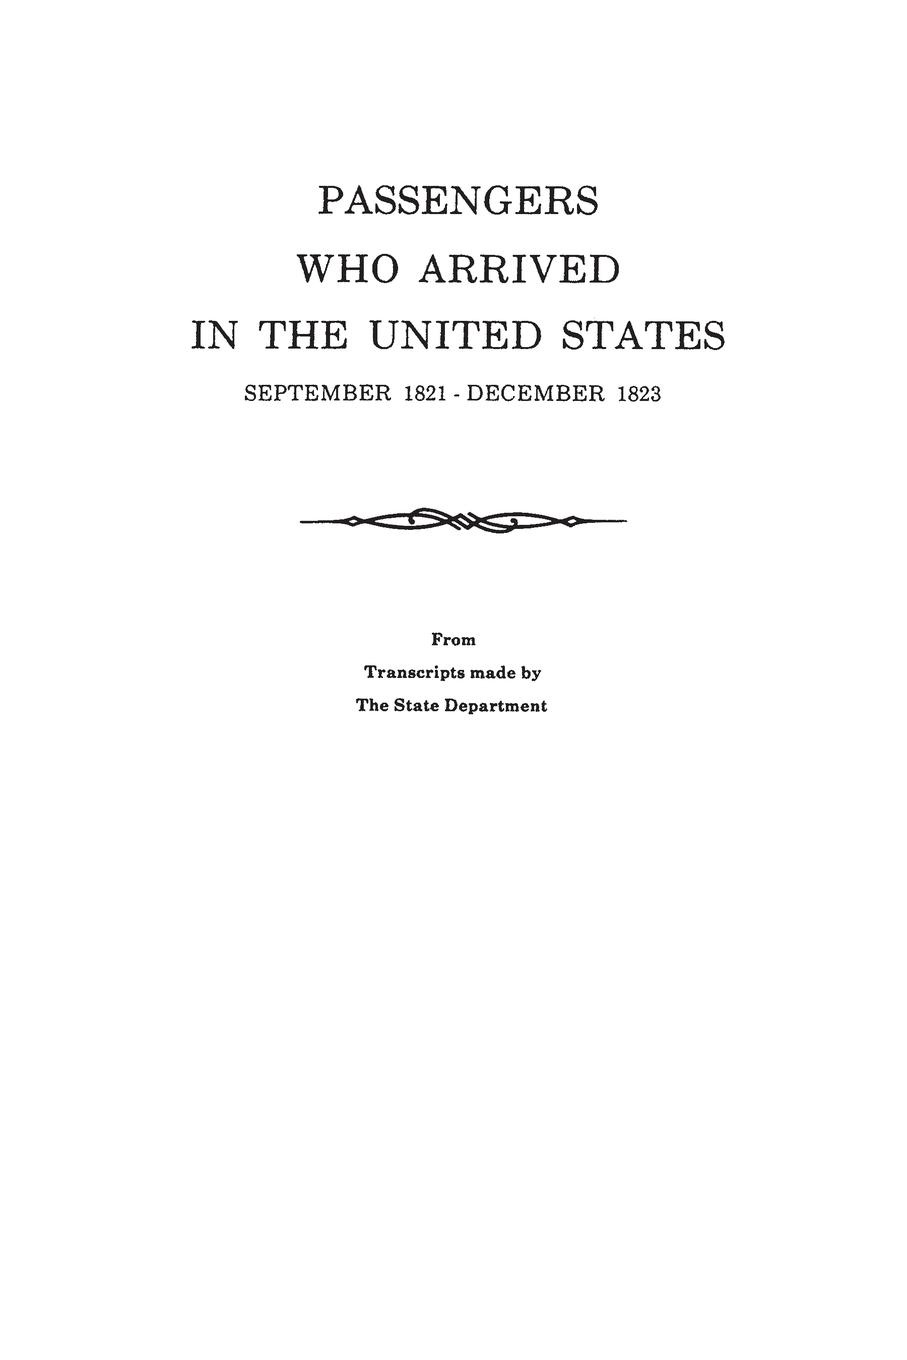 U. S. Department of State Passengers Who Arrived in the United States, September 1821-December 1823. from Transcripts by the State Department u s department of justice investigation of the baltimore city police department